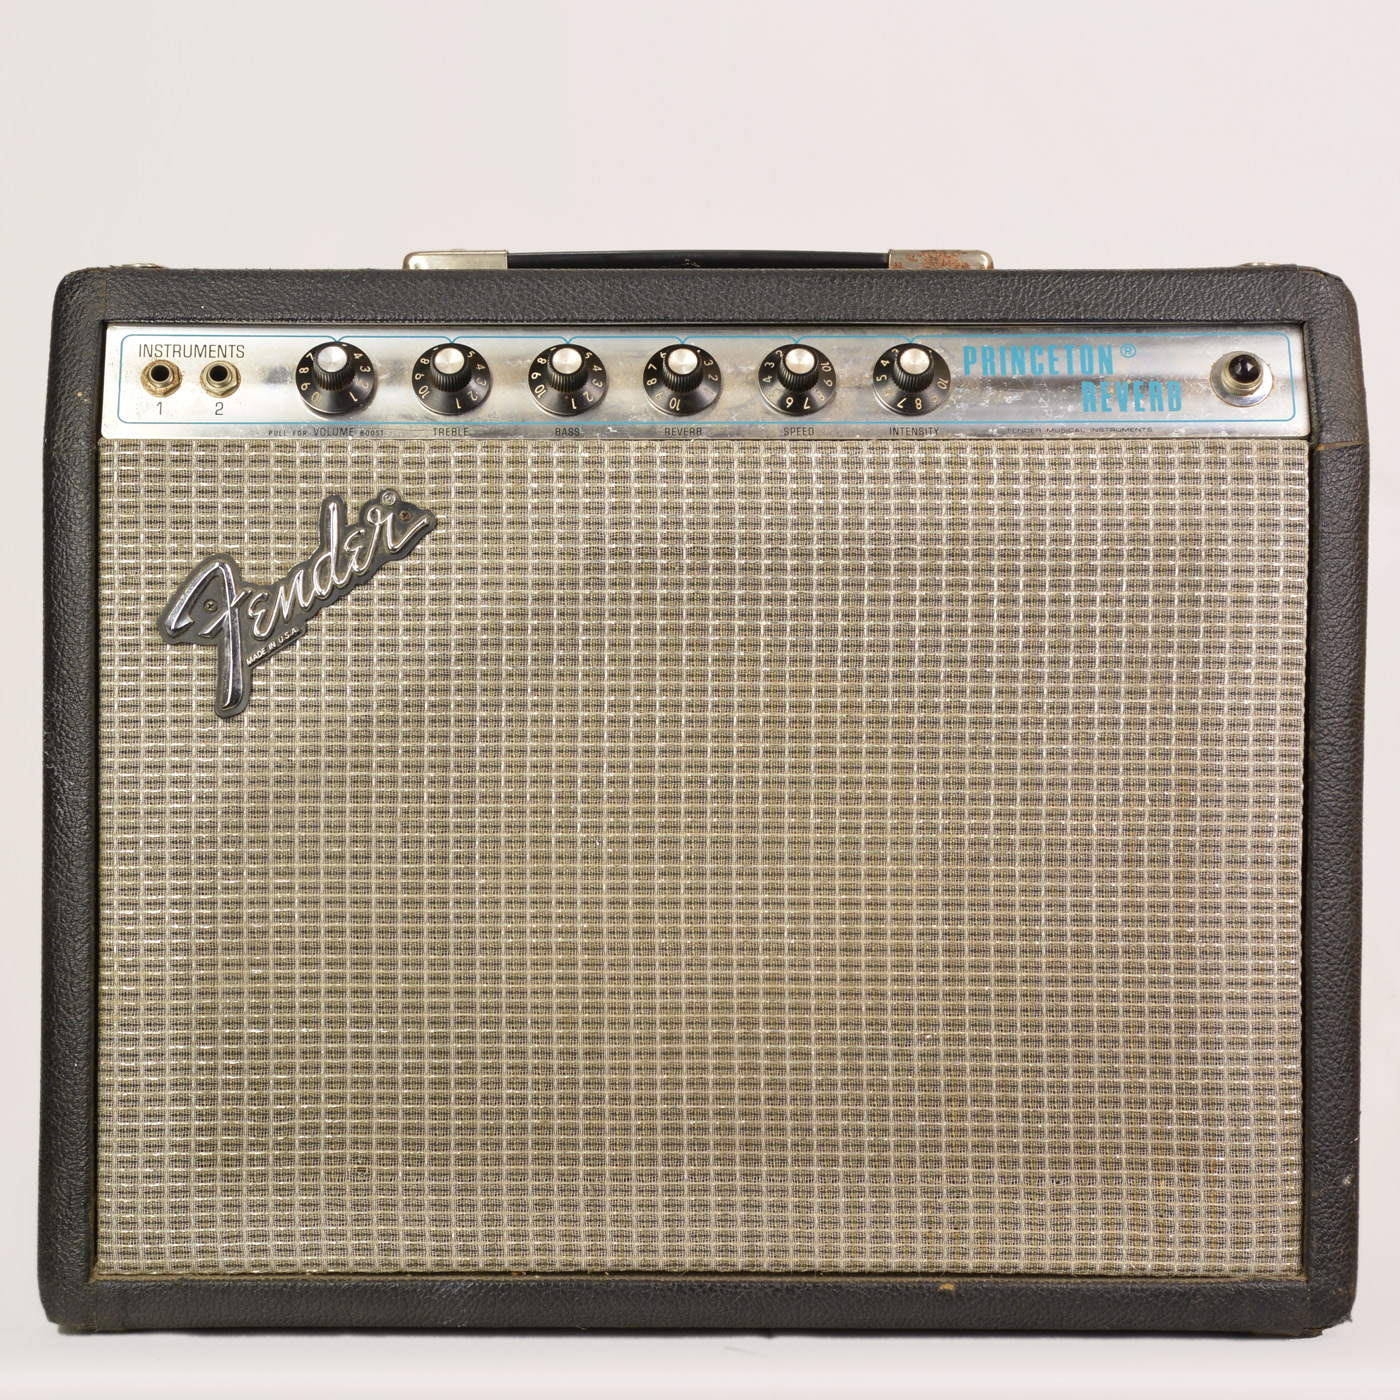 Photo of Fender Princeton Reverb 1979 Black Tolex